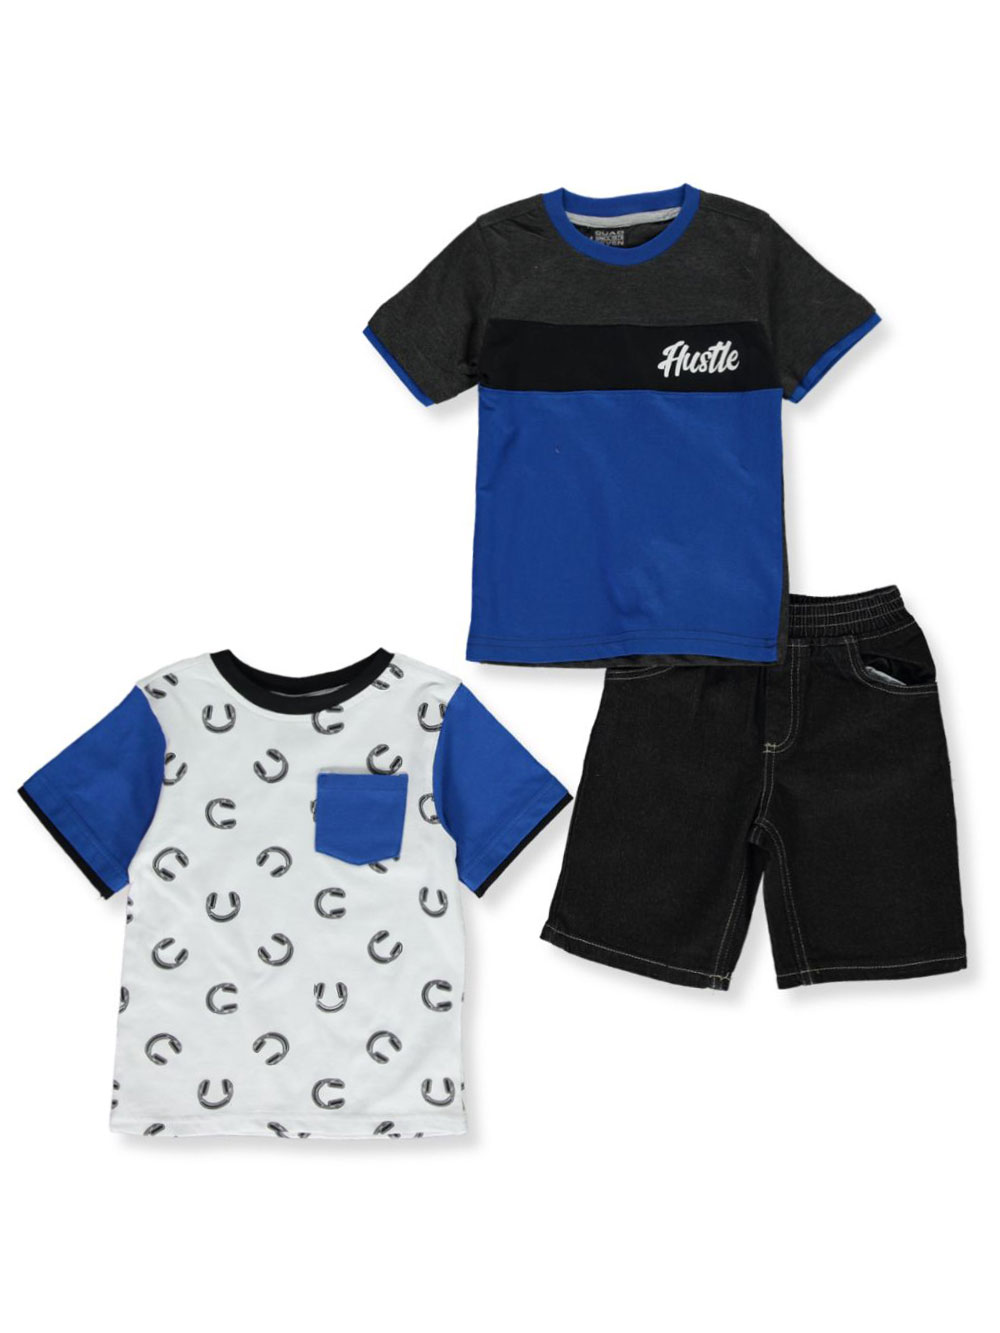 Size 3t Boys for Boys